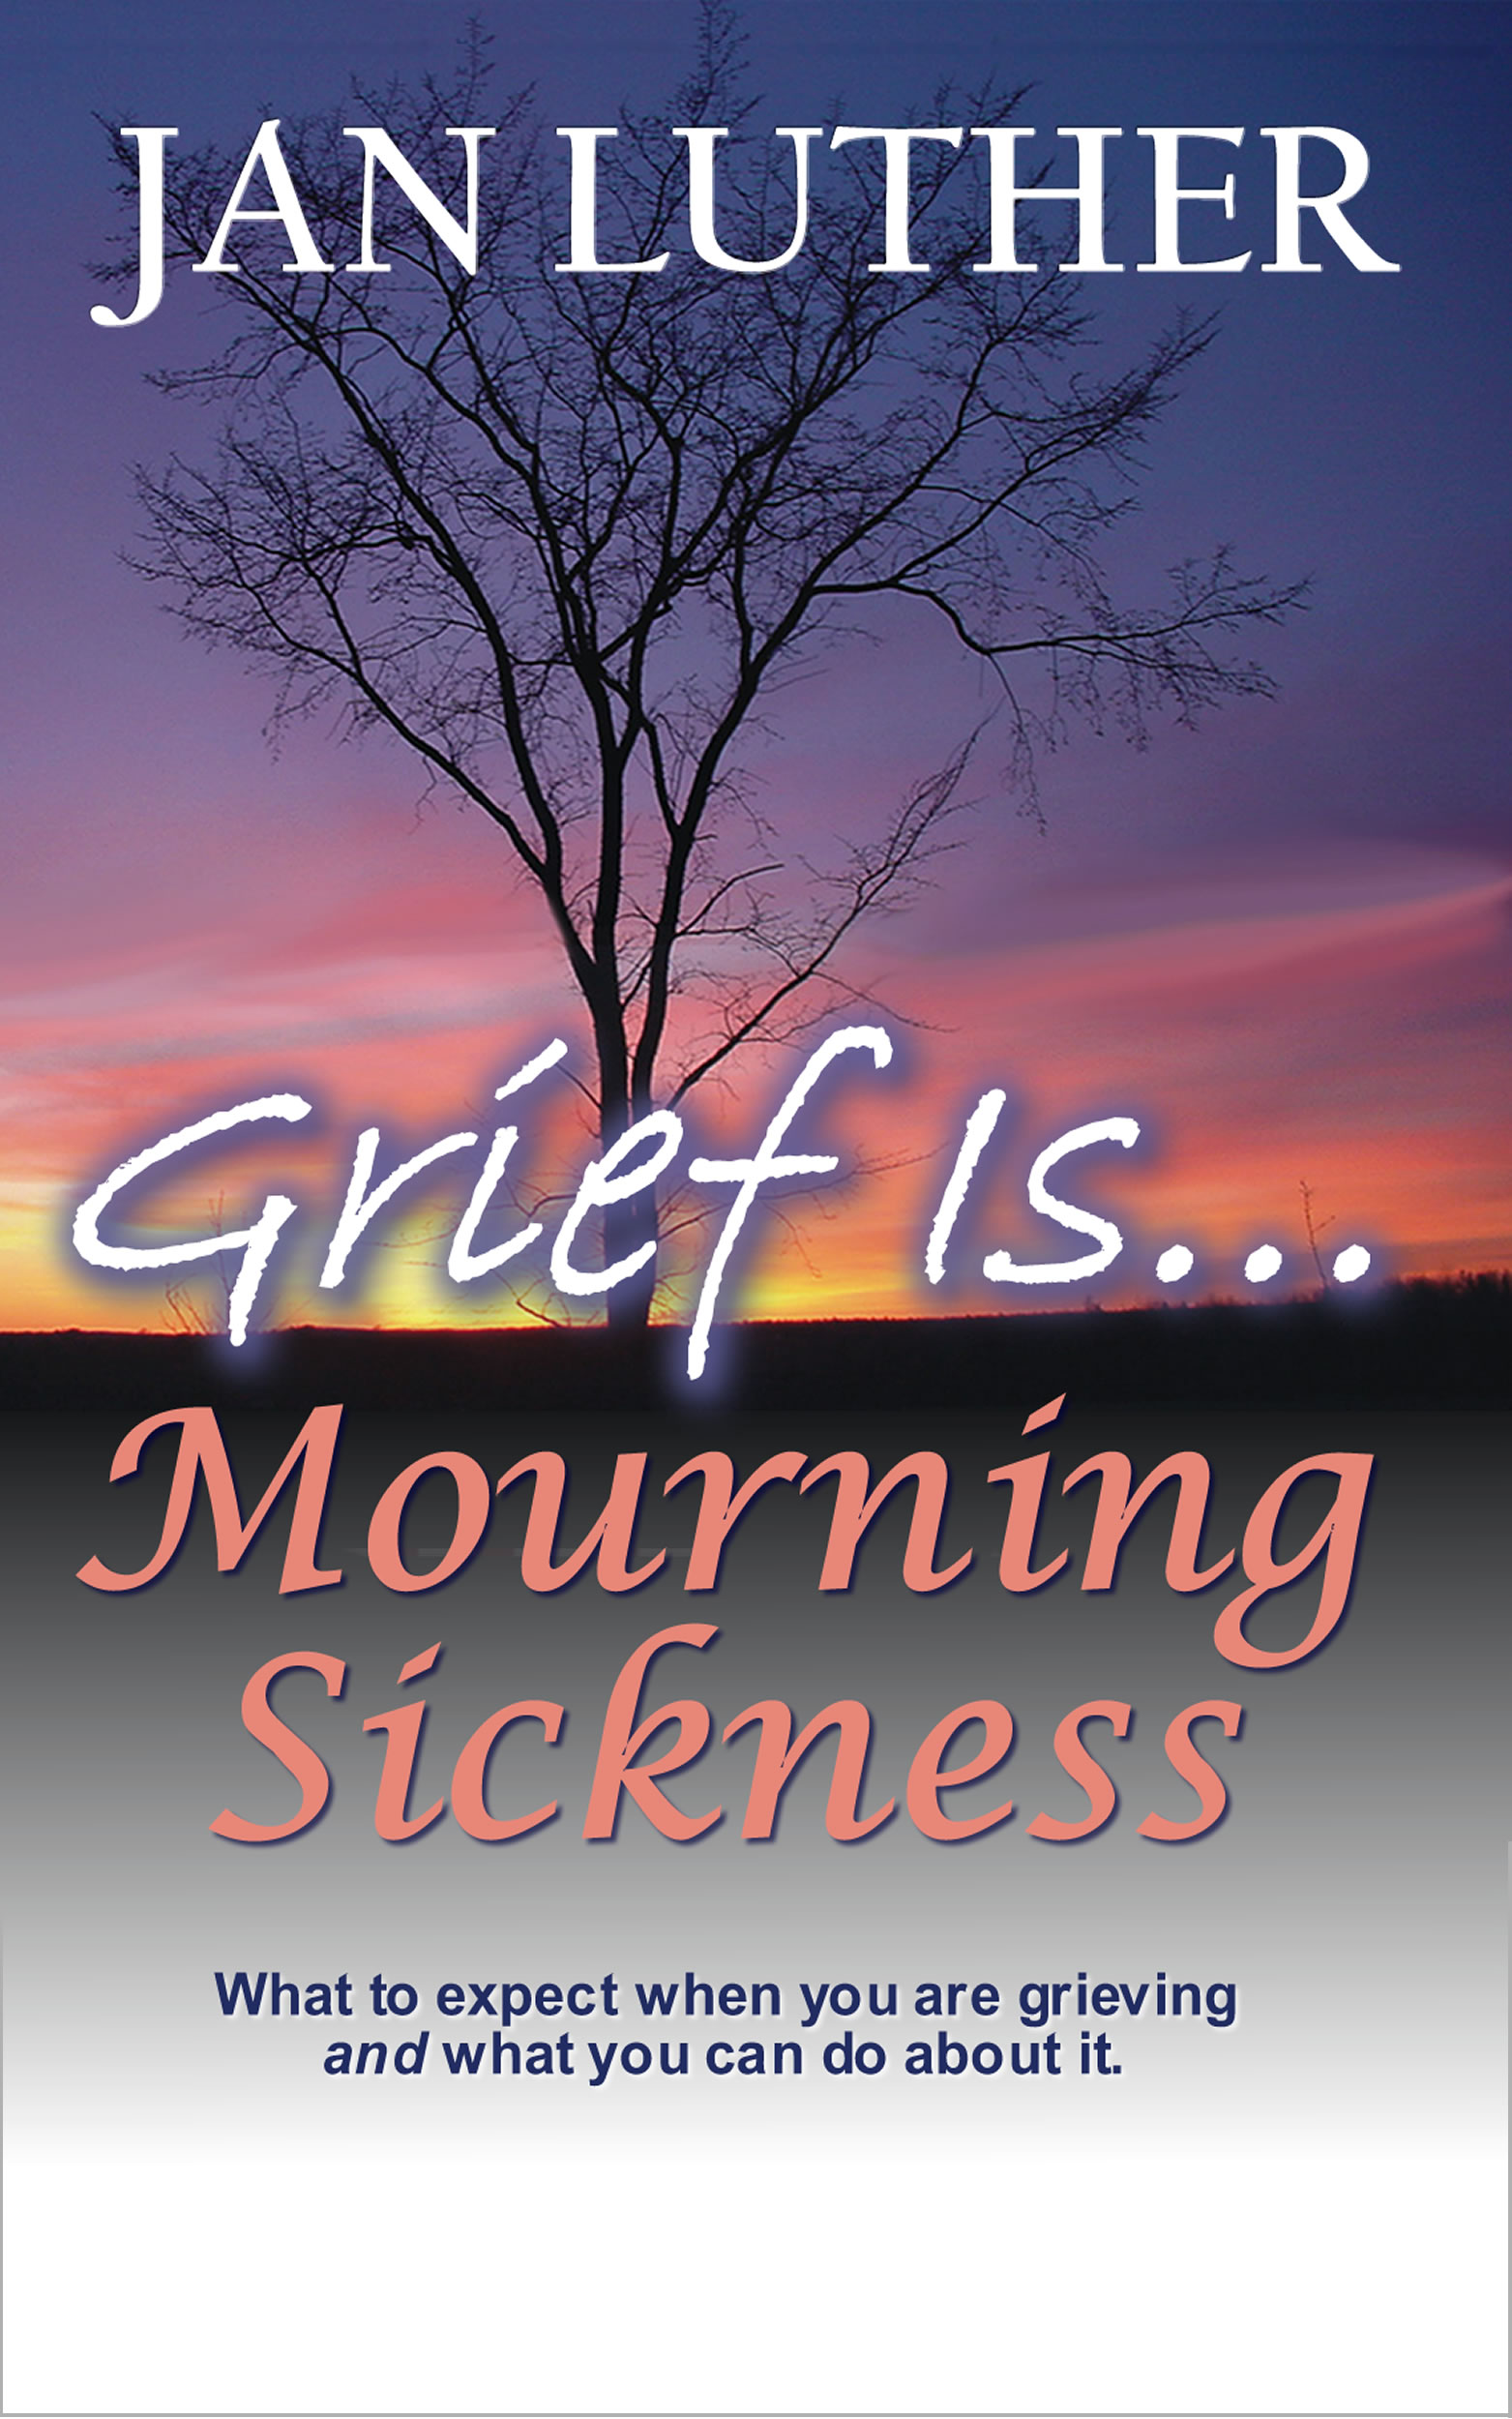 Grief Is Mourning Sickness by Jan Luther